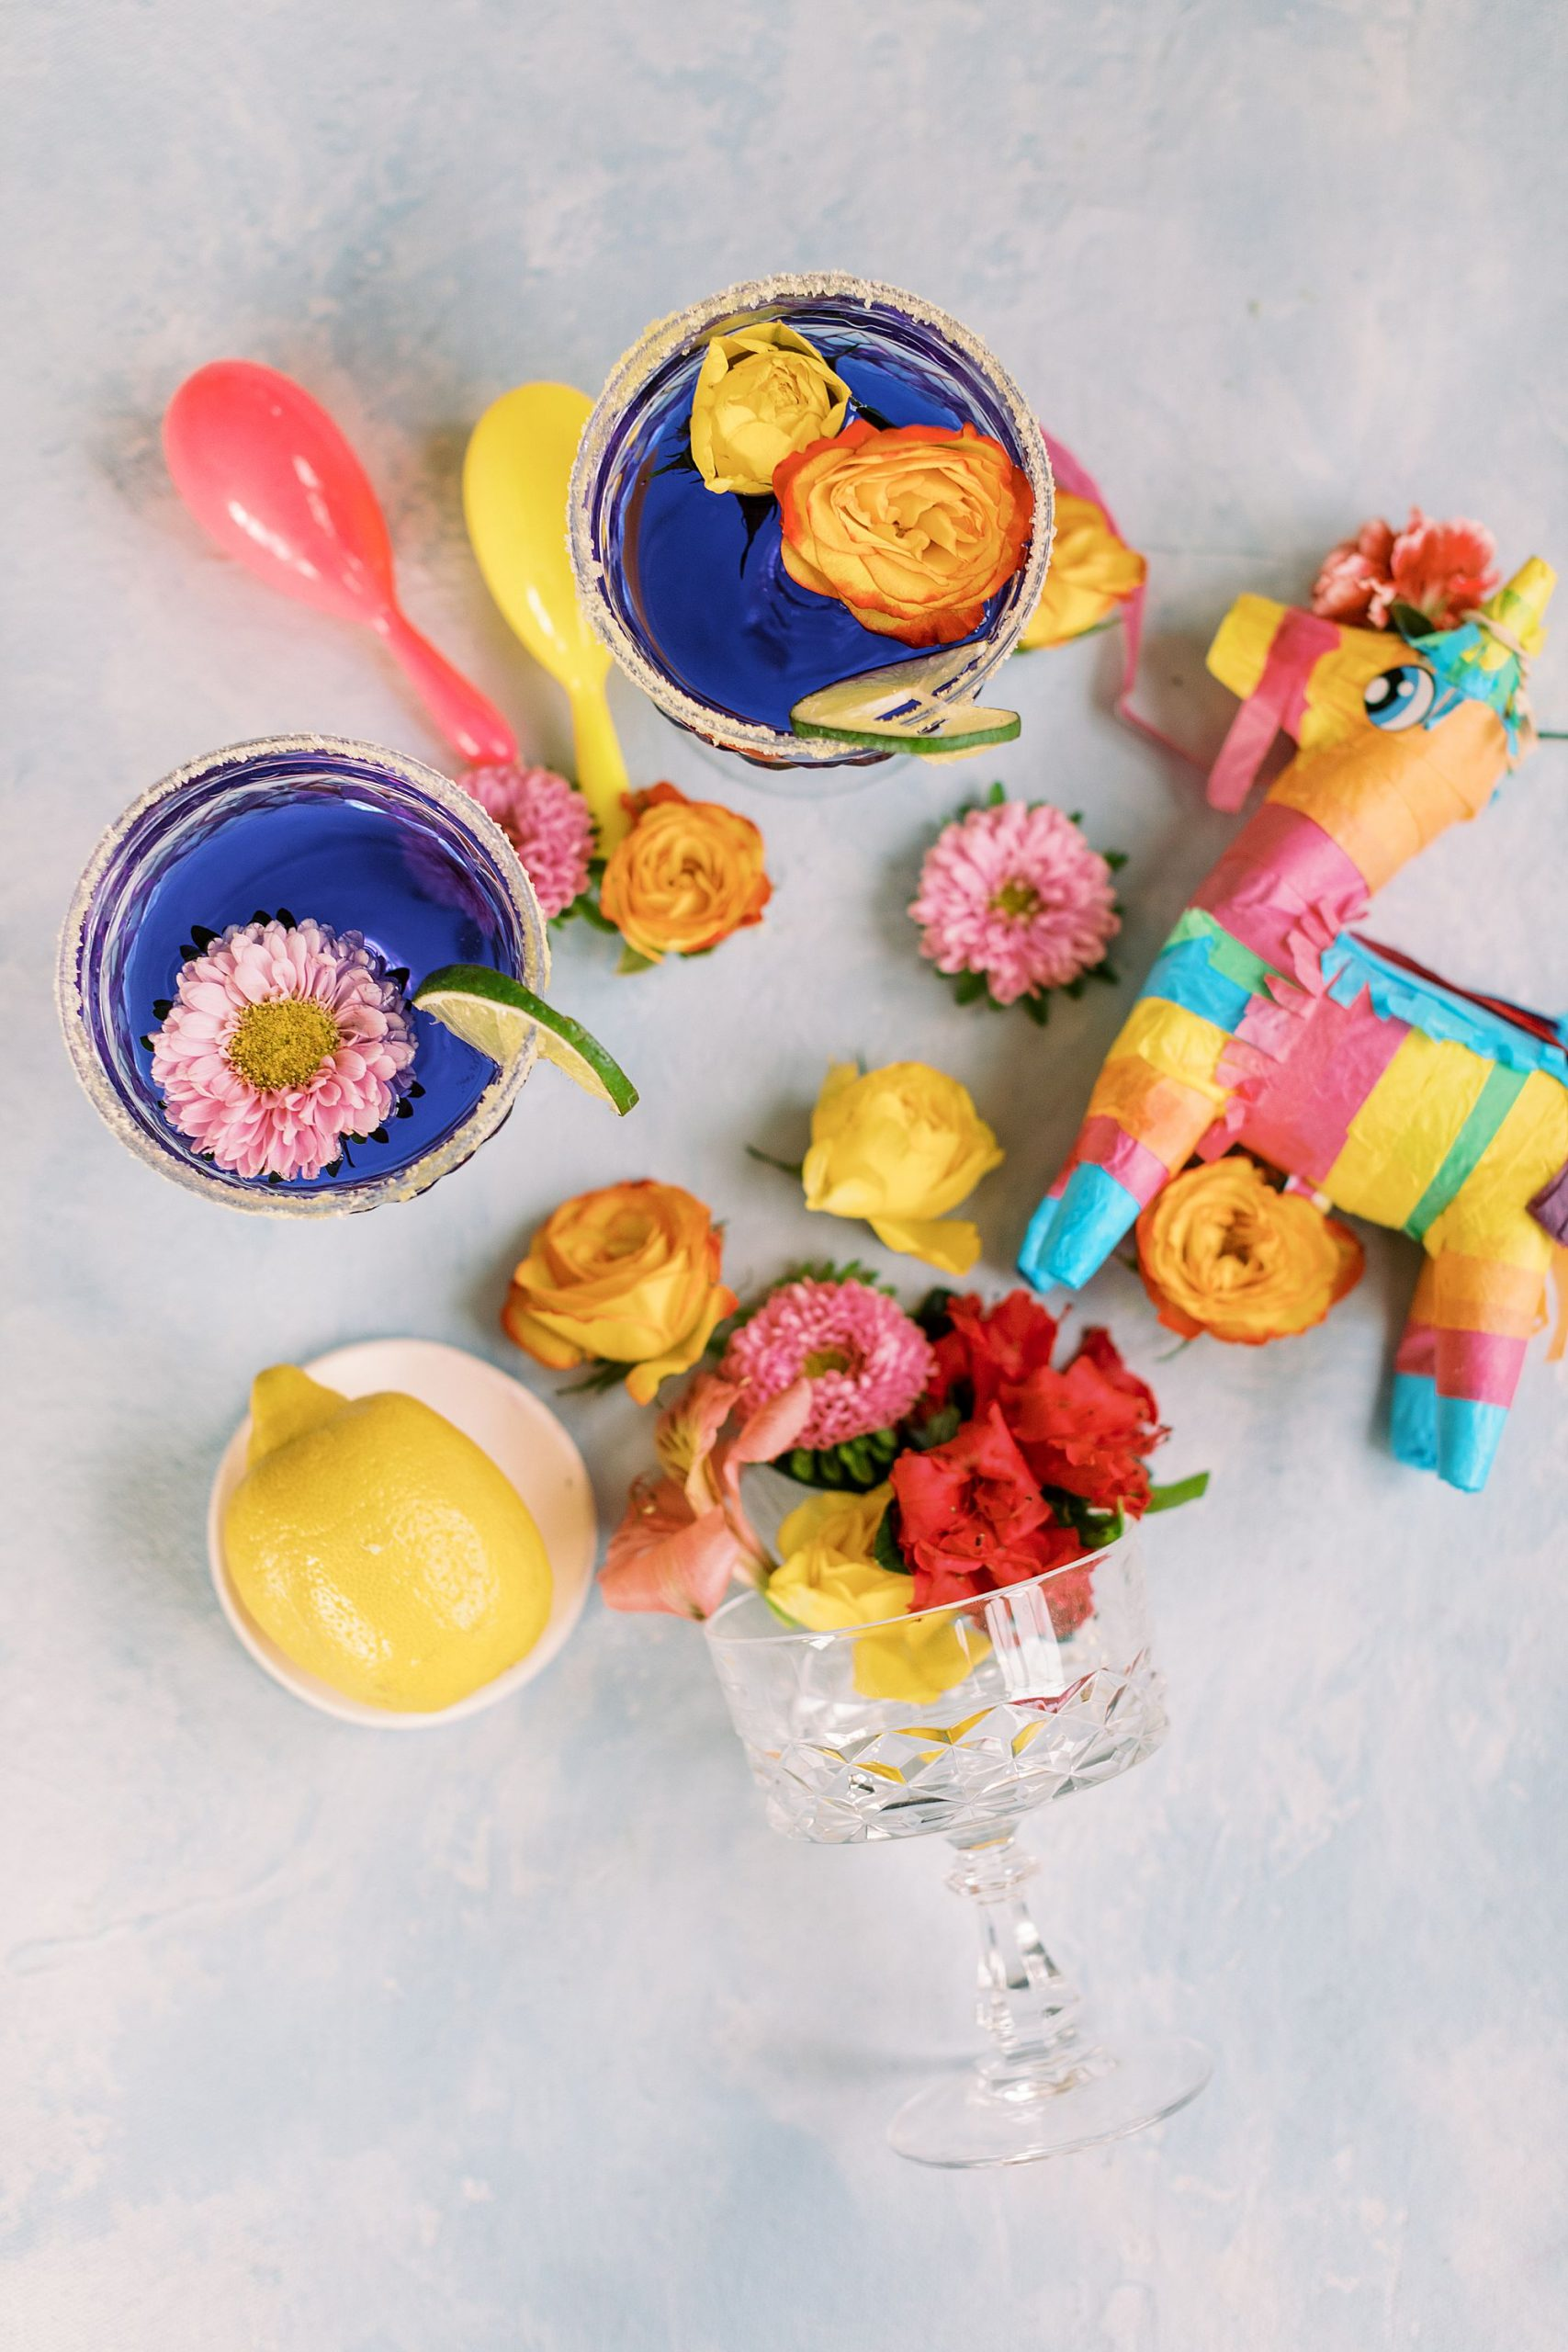 Cinco De Mayo Inspiration for Your FIesta - Party Crush Studio and Ashley Baumgartner_0063.jpg